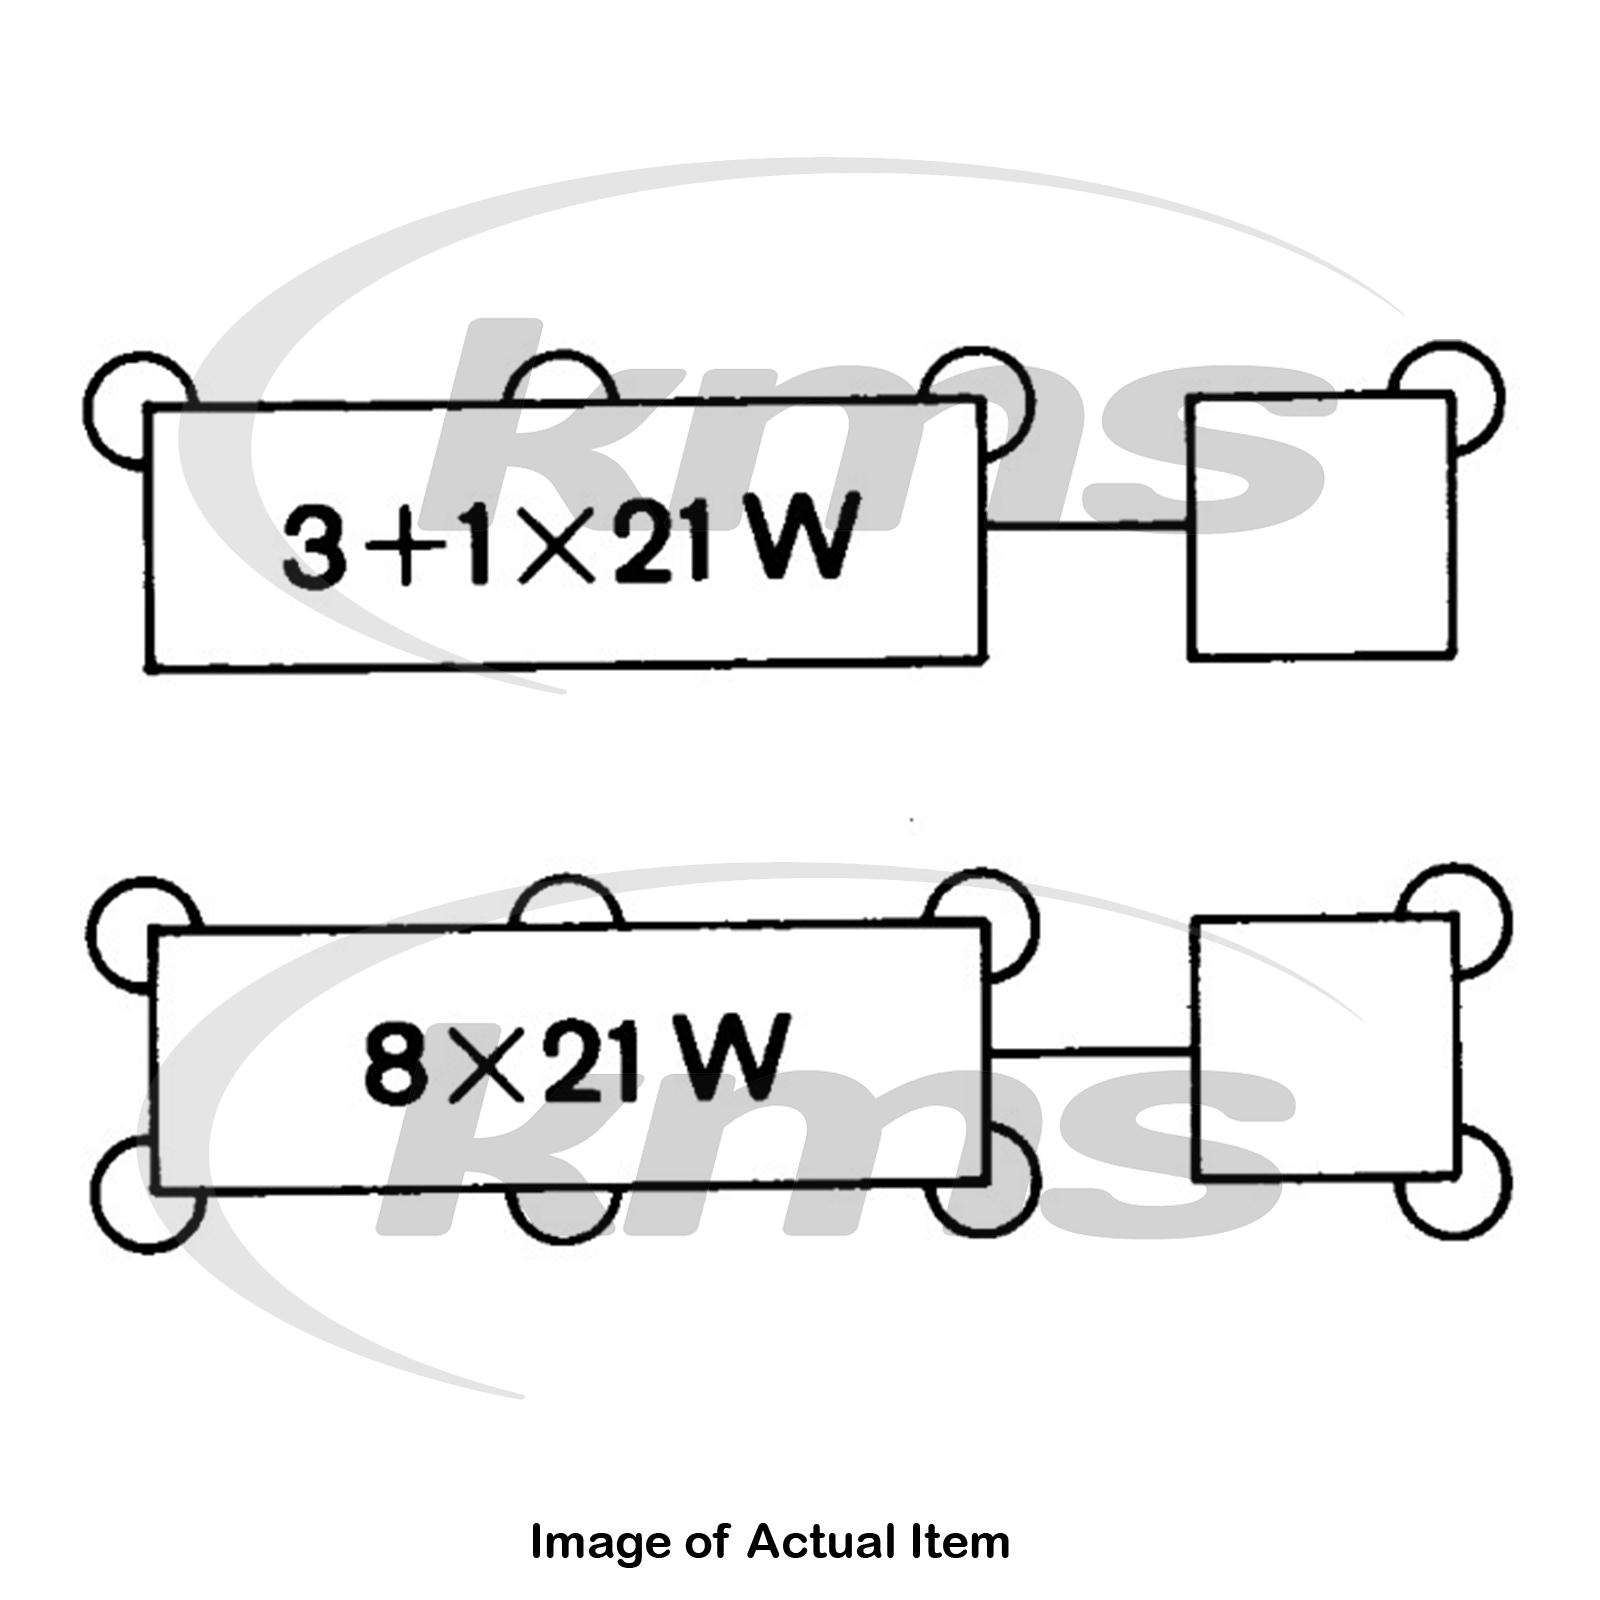 New Genuine Hella Flasher Relay Unit 4dw 004 513 021 Top German Pin Electronic Car Pictures Sentinel Quality